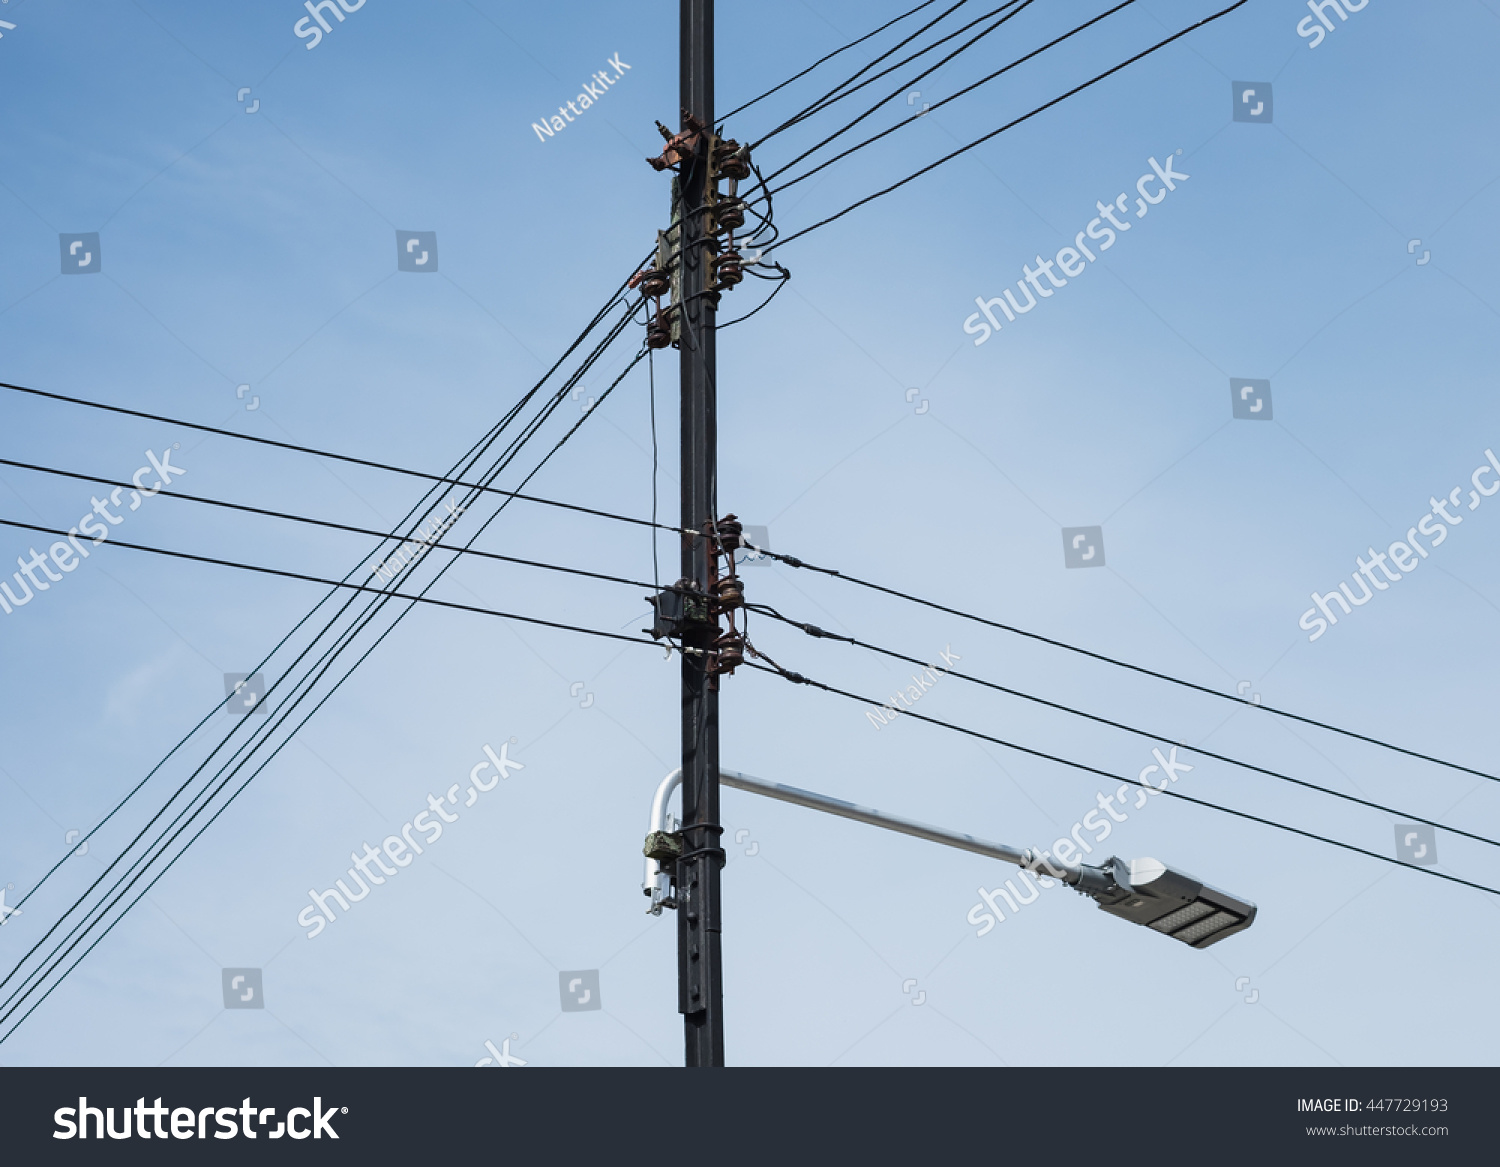 Cable Wiring Branching Three Phase Low Stock Photo (Edit Now ...